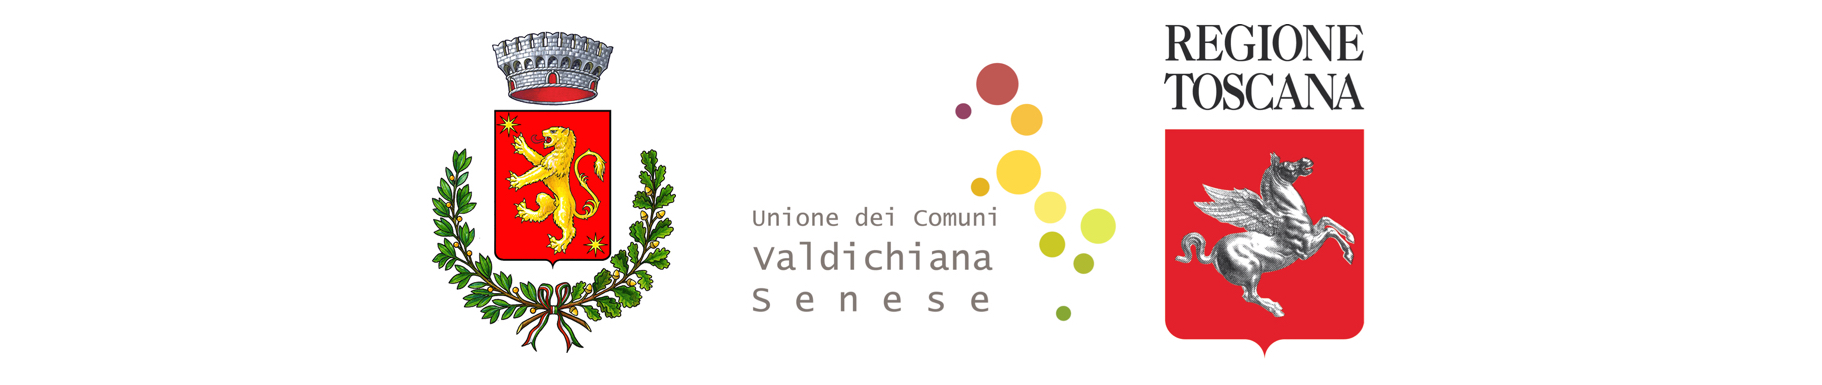 TCFT is supported by our host partner Comune di Sarteano and is organised under the patronage of the Unione dei Comuni Valdichiana Senese & Regione Tuscana